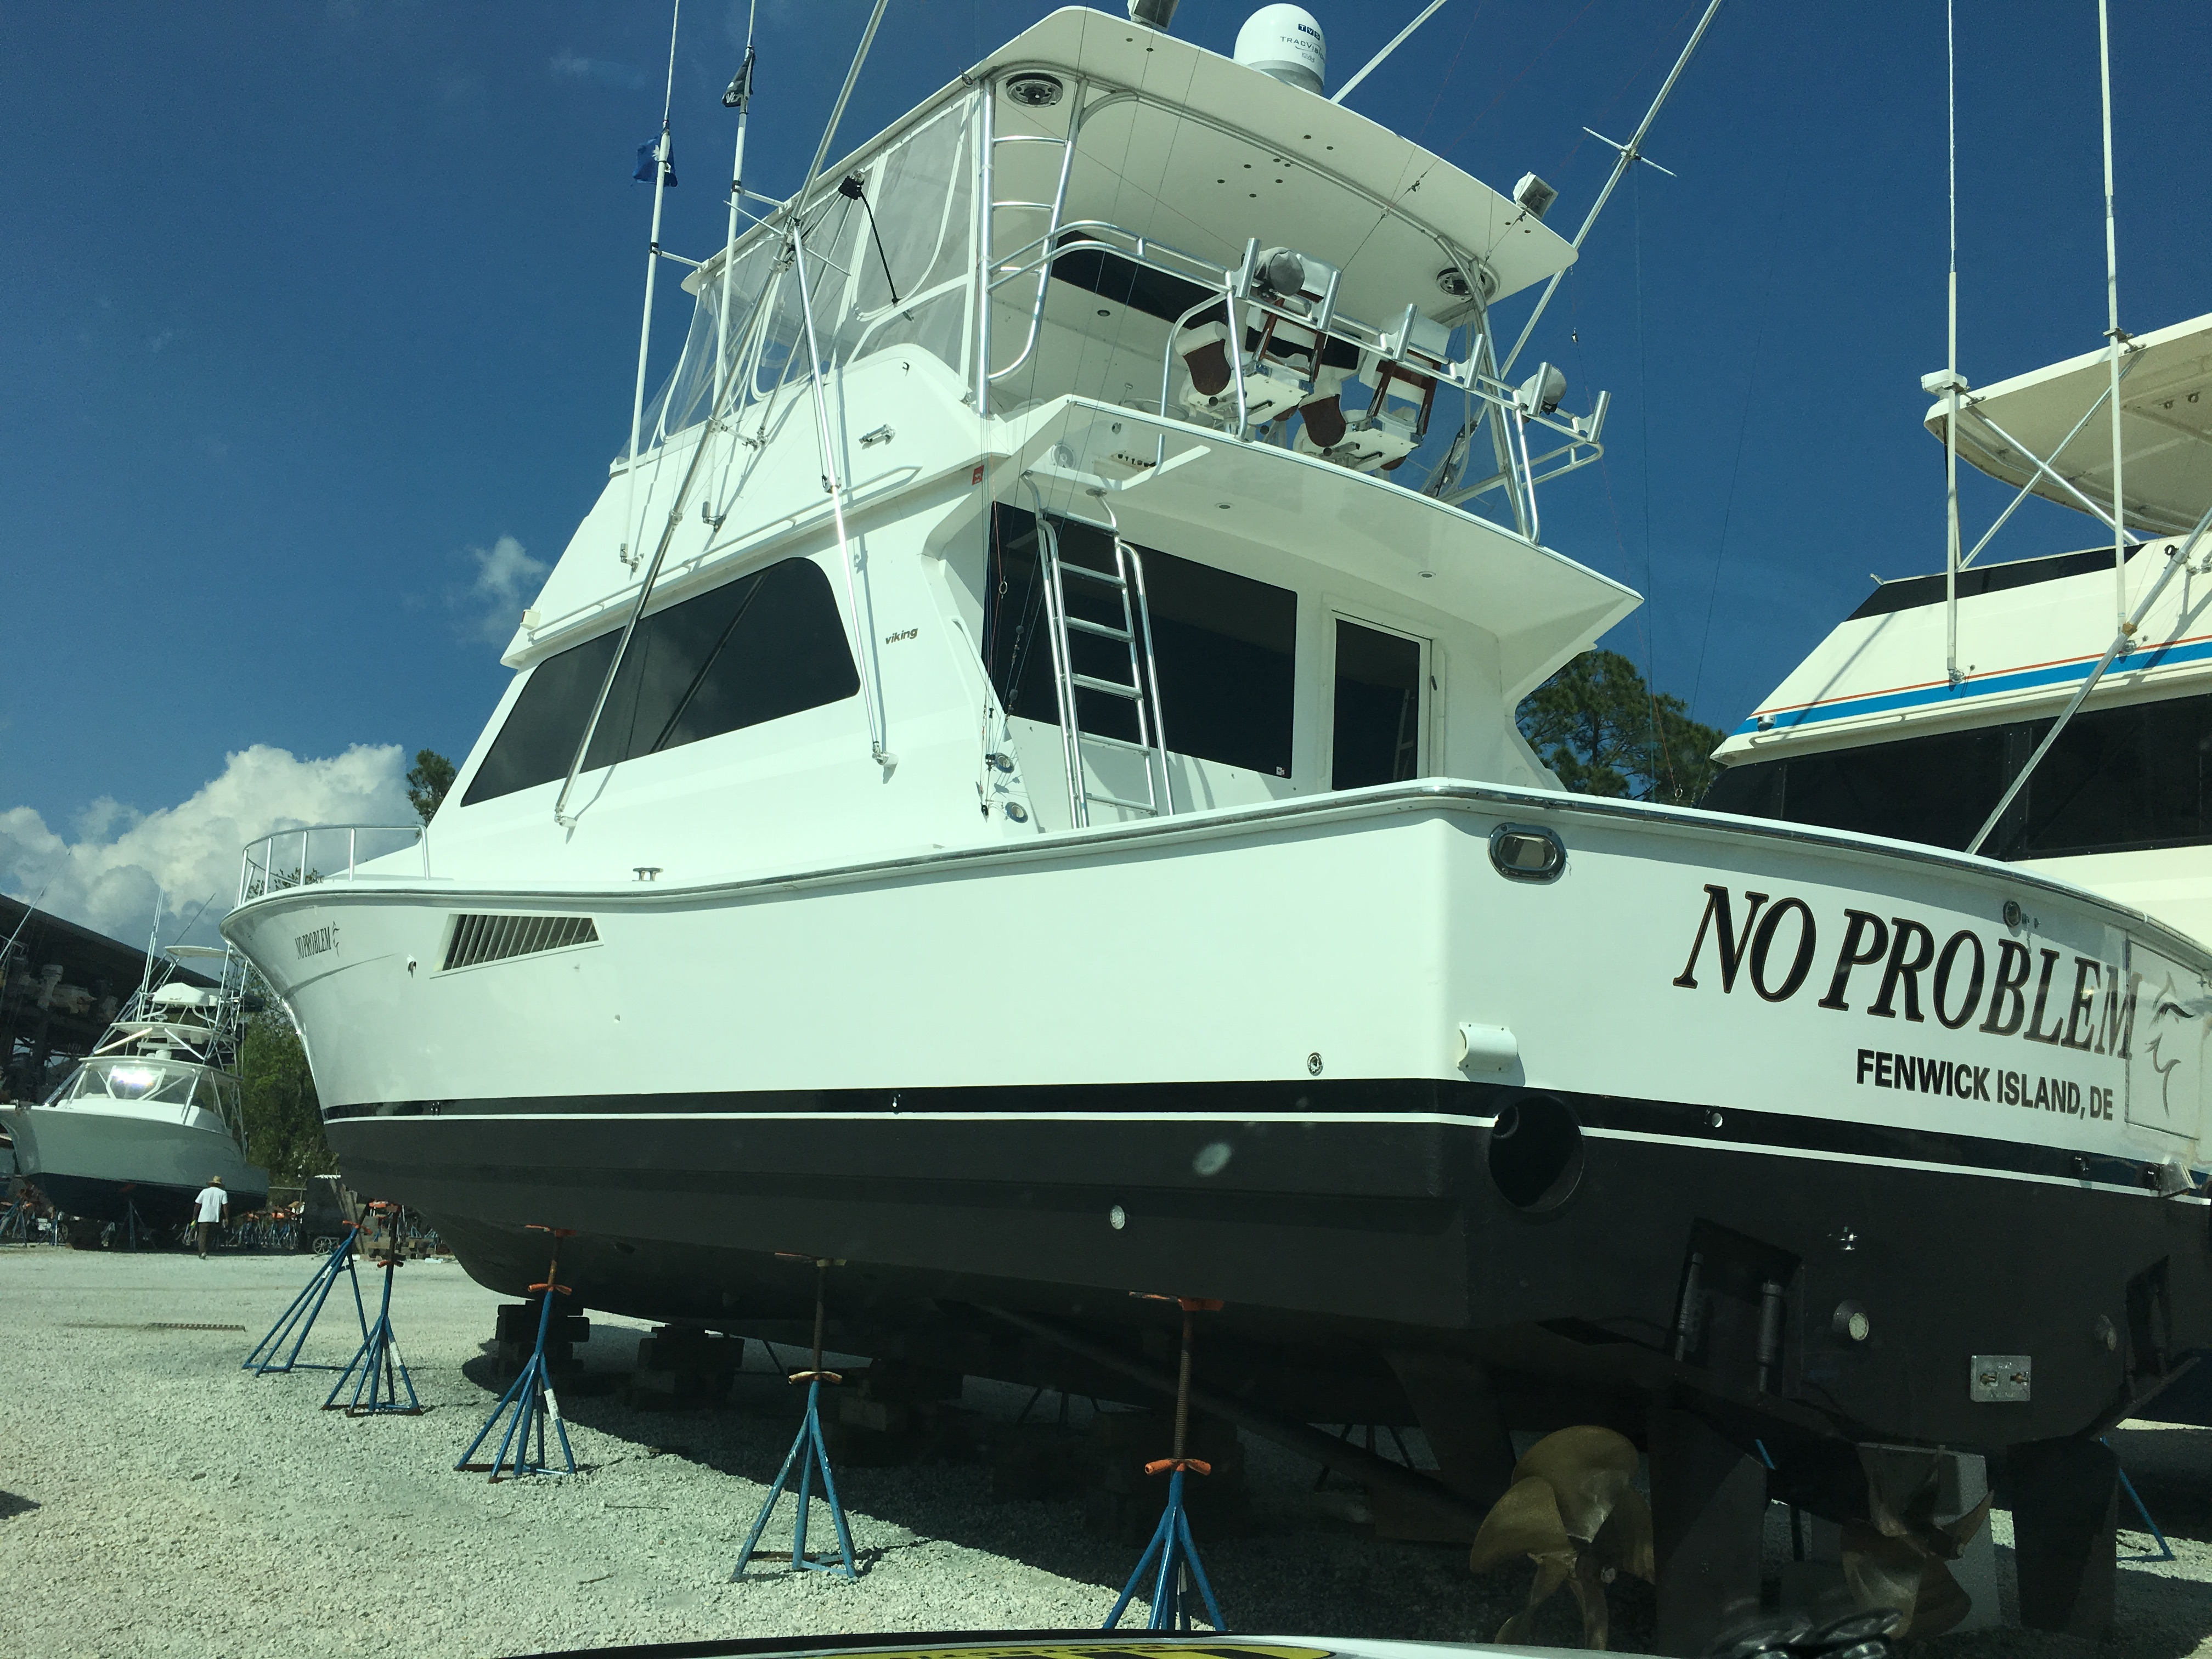 Inlet marine service in murrells inlet sc boat for Yamaha outboard mechanic near me